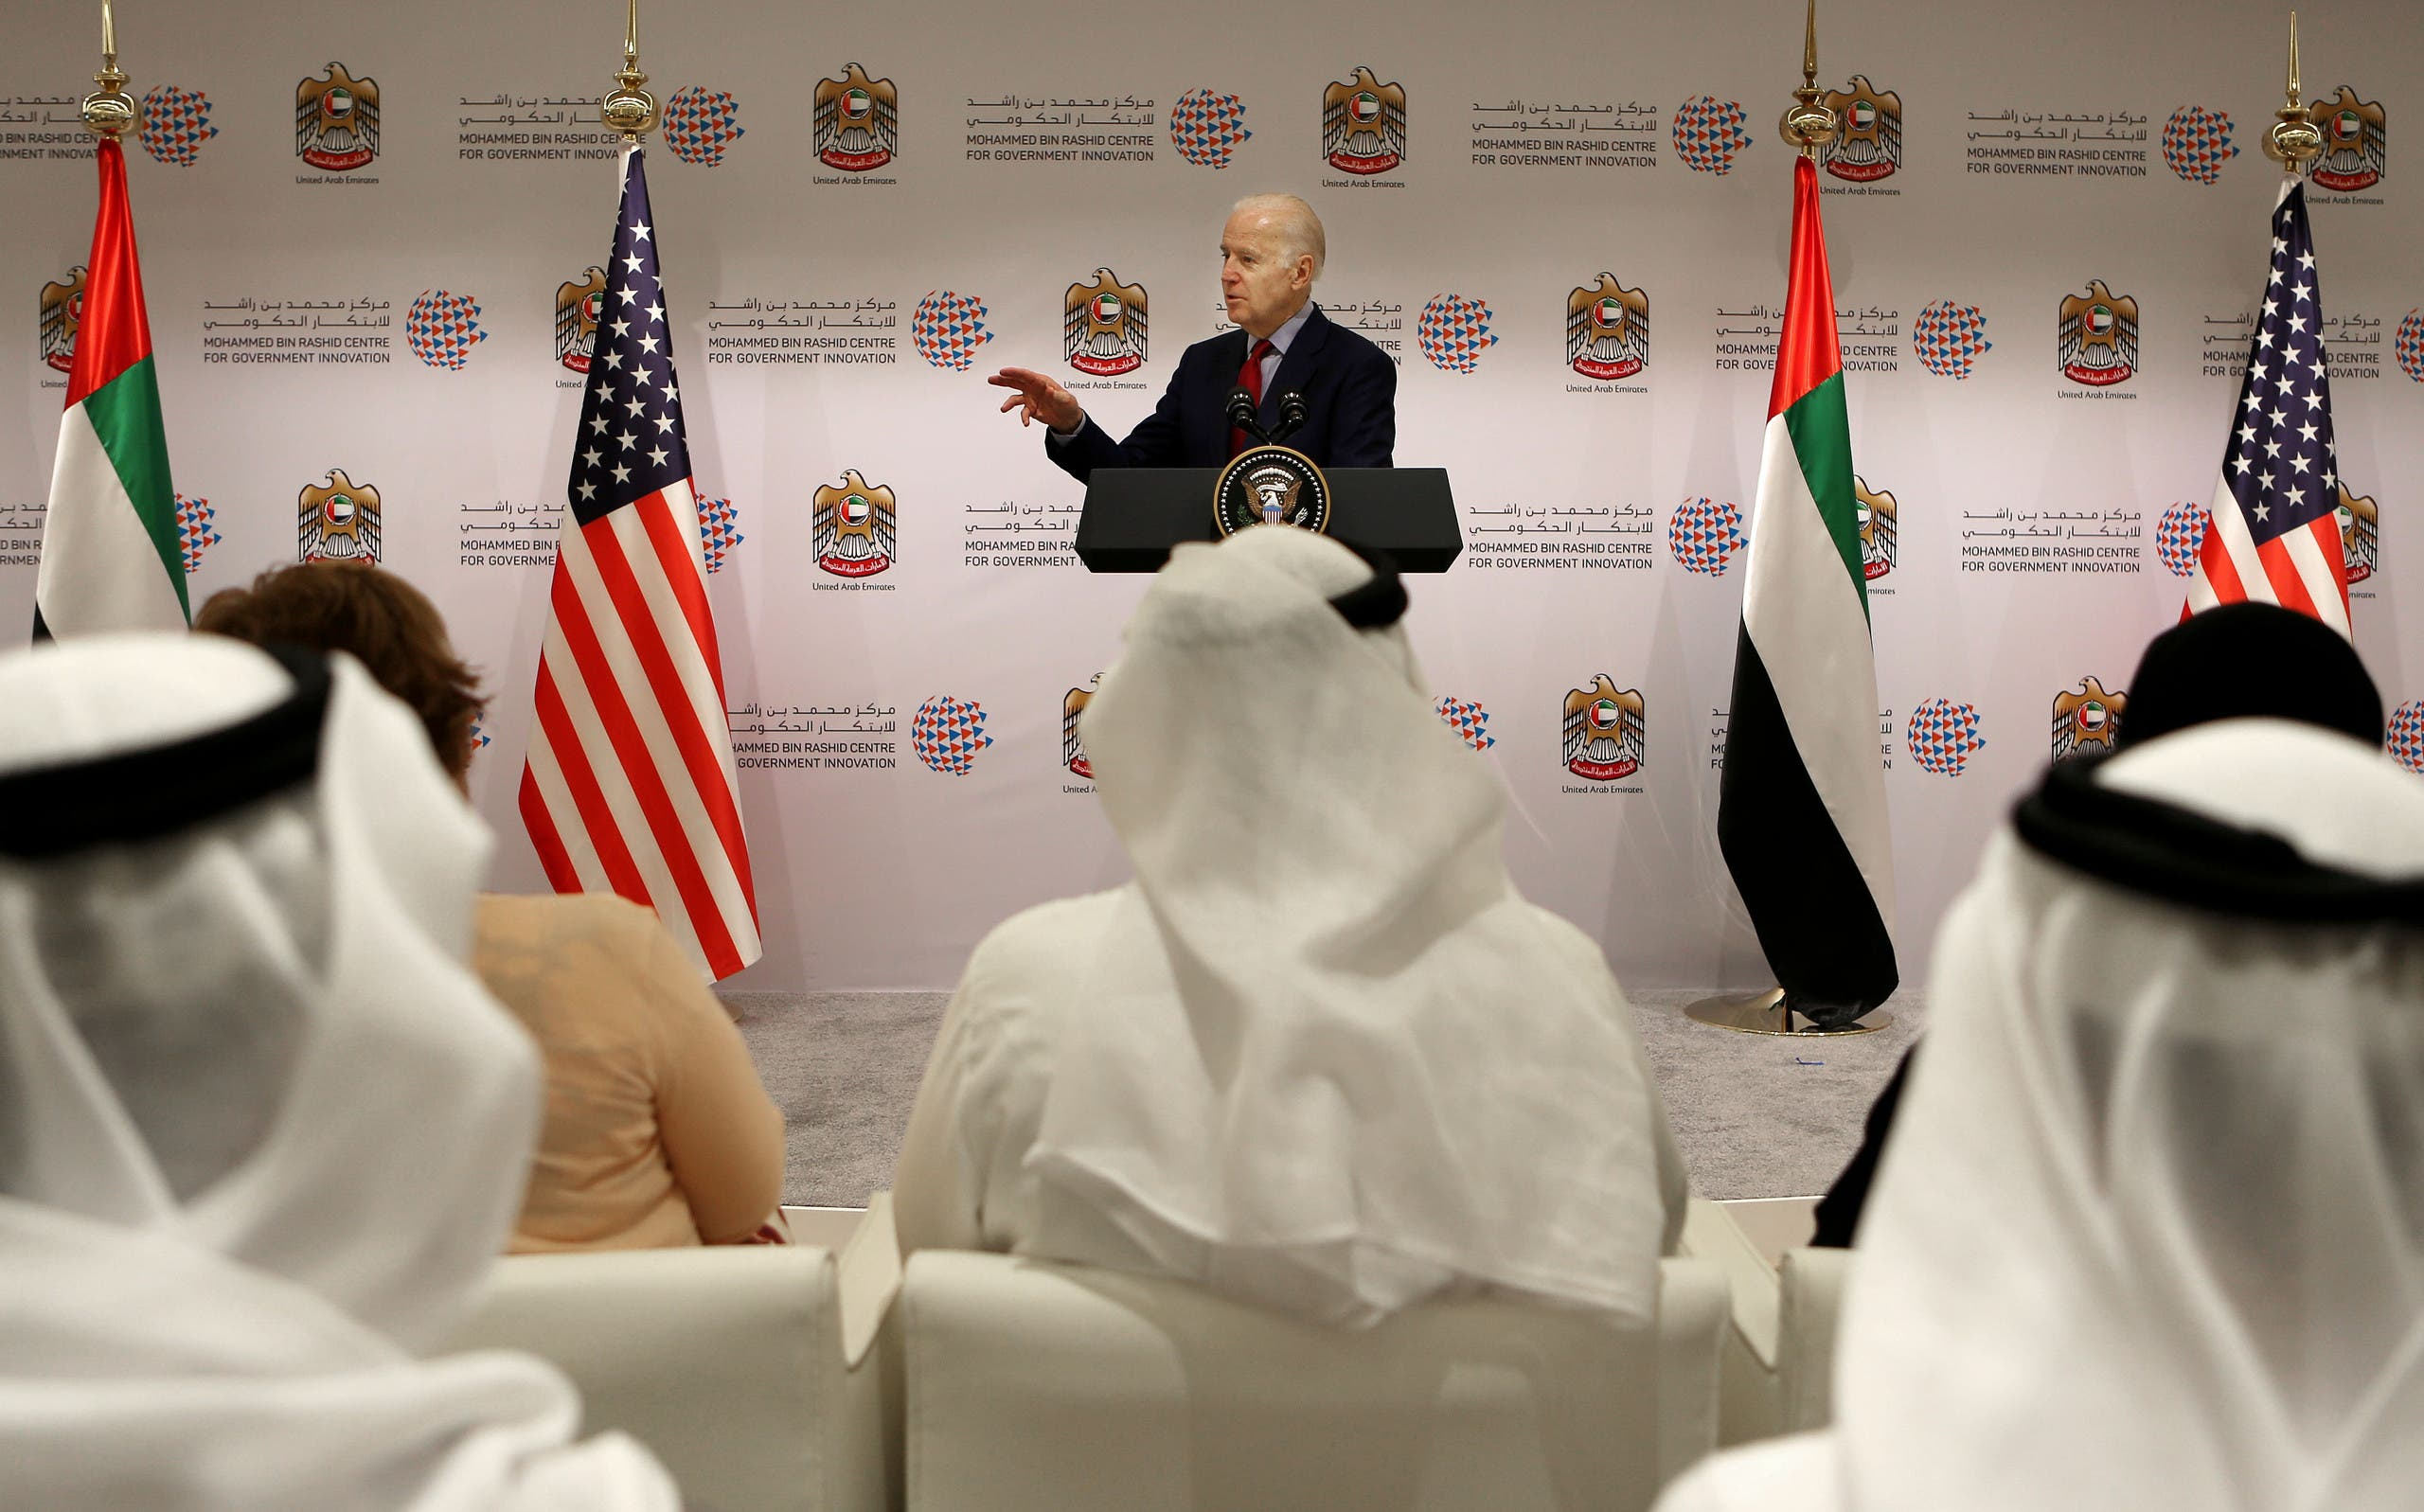 U.S. Vice President Joe Biden speaks during a conference with young Emirati entrepreneurs in Dubai, United Arab Emirates, Tuesday, March 8, 2016. (AP)